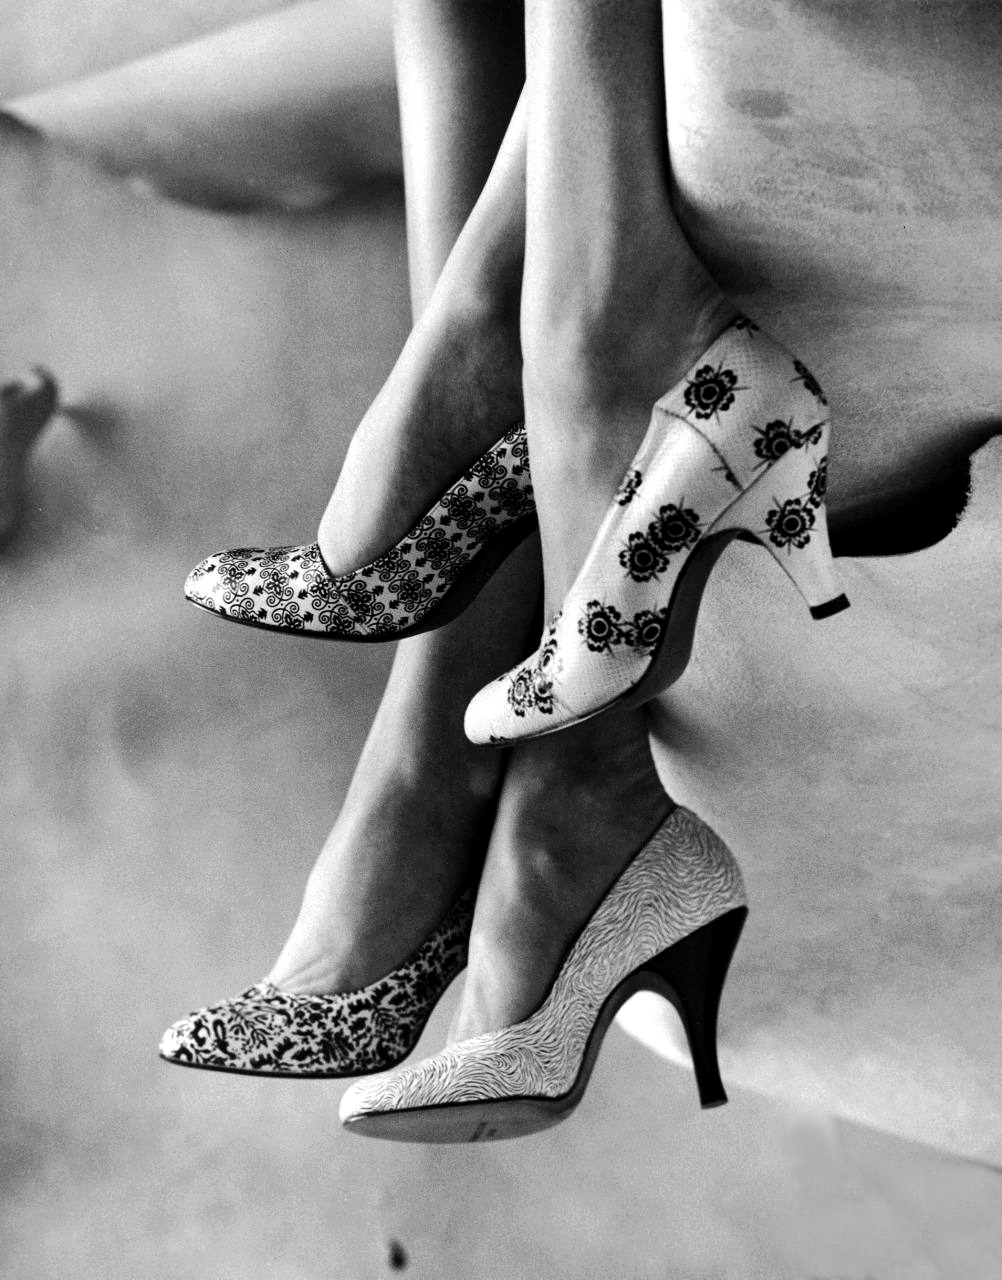 Gordon Parks: Models displaying printed leather shoes. 1956